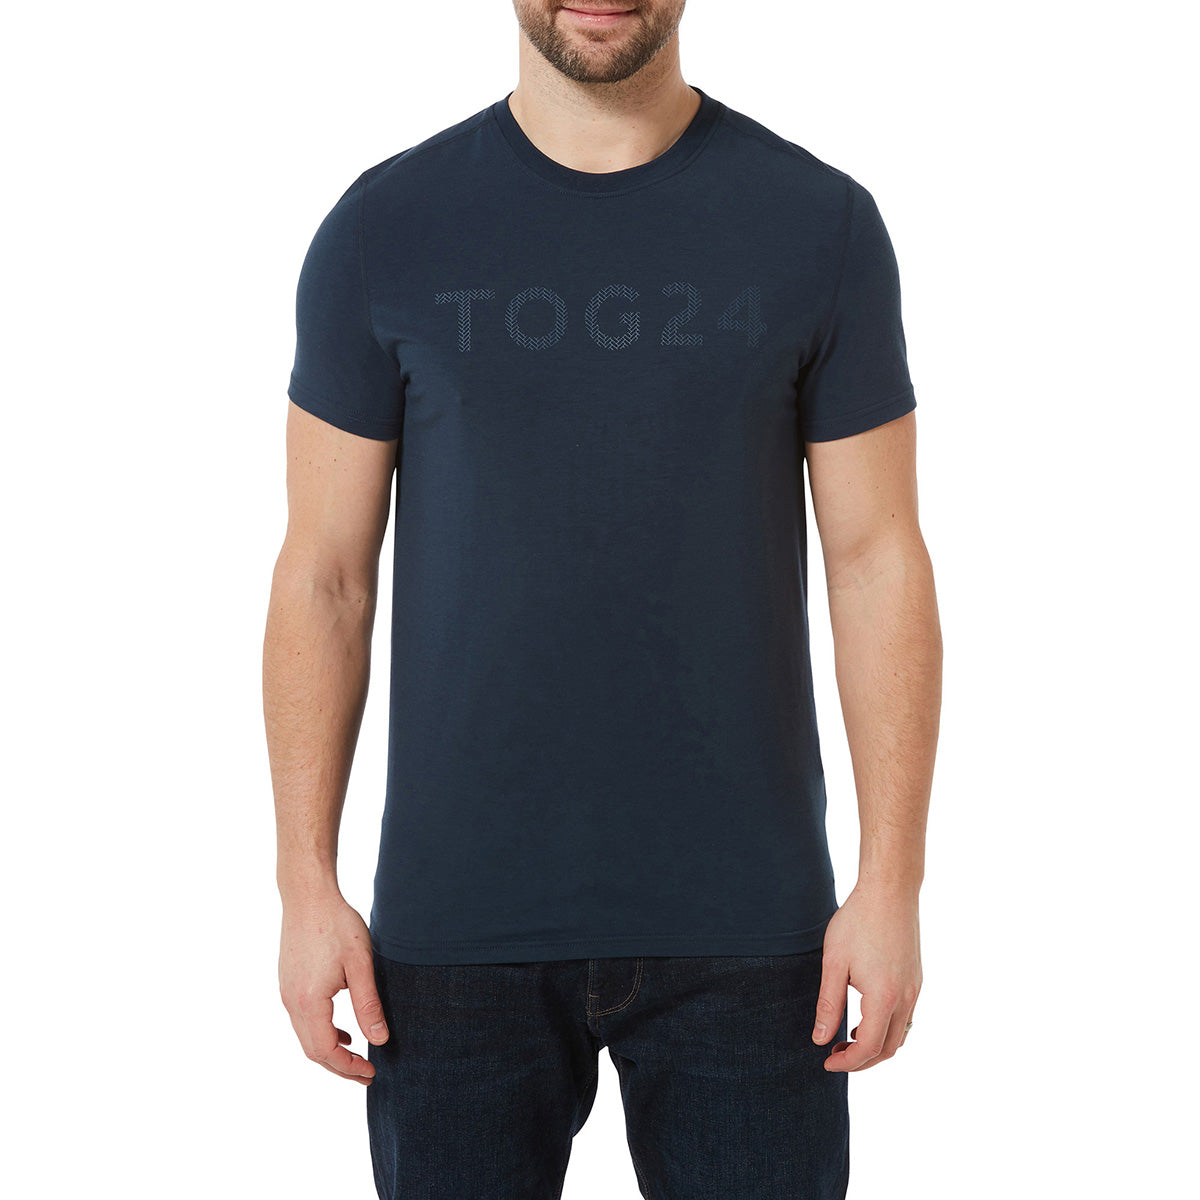 Hutton Mens Performance Graphic T-Shirt - Naval Blue